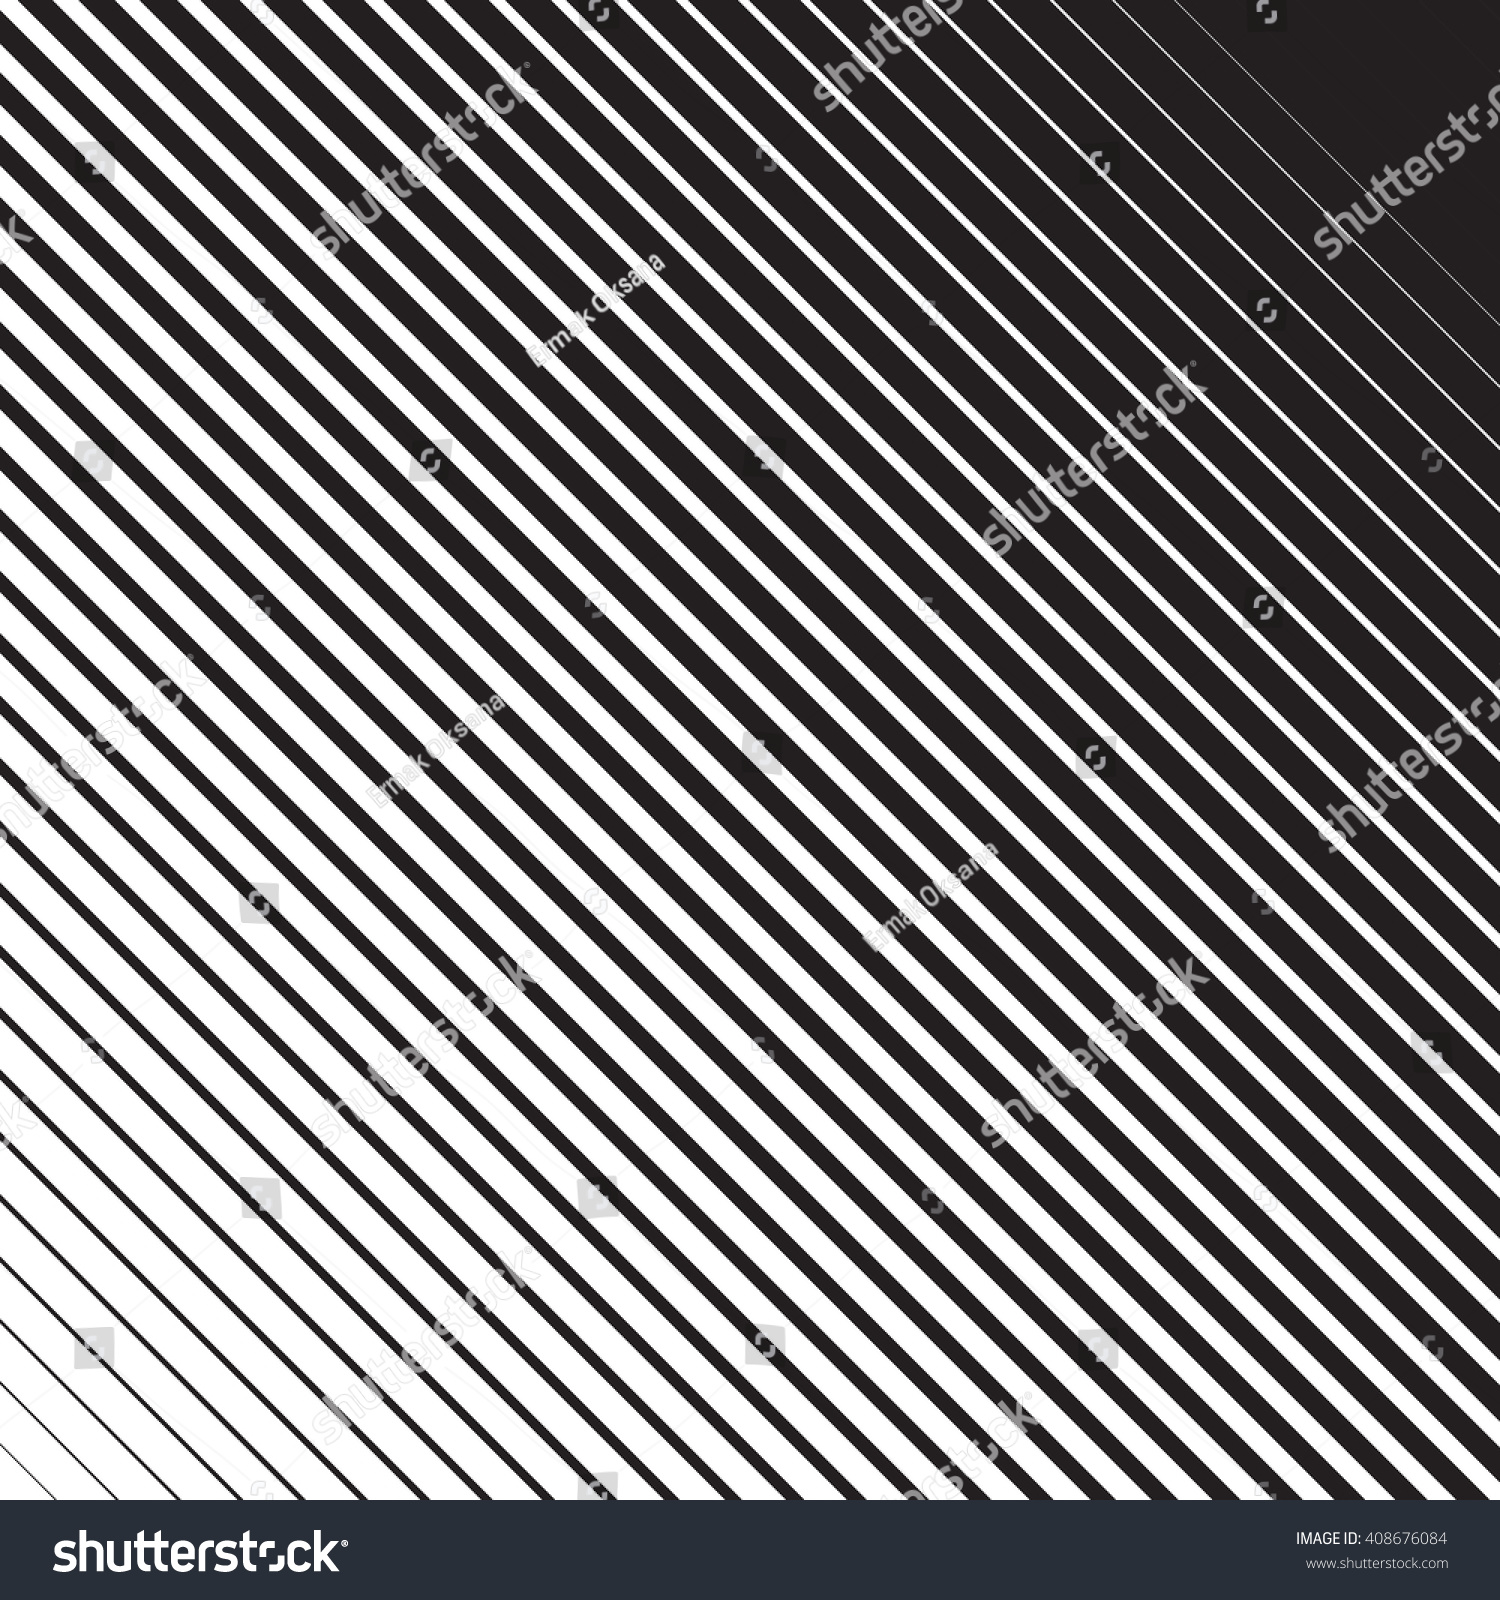 Line Texture Vector : Diagonal vector lines pattern repeat straight stock